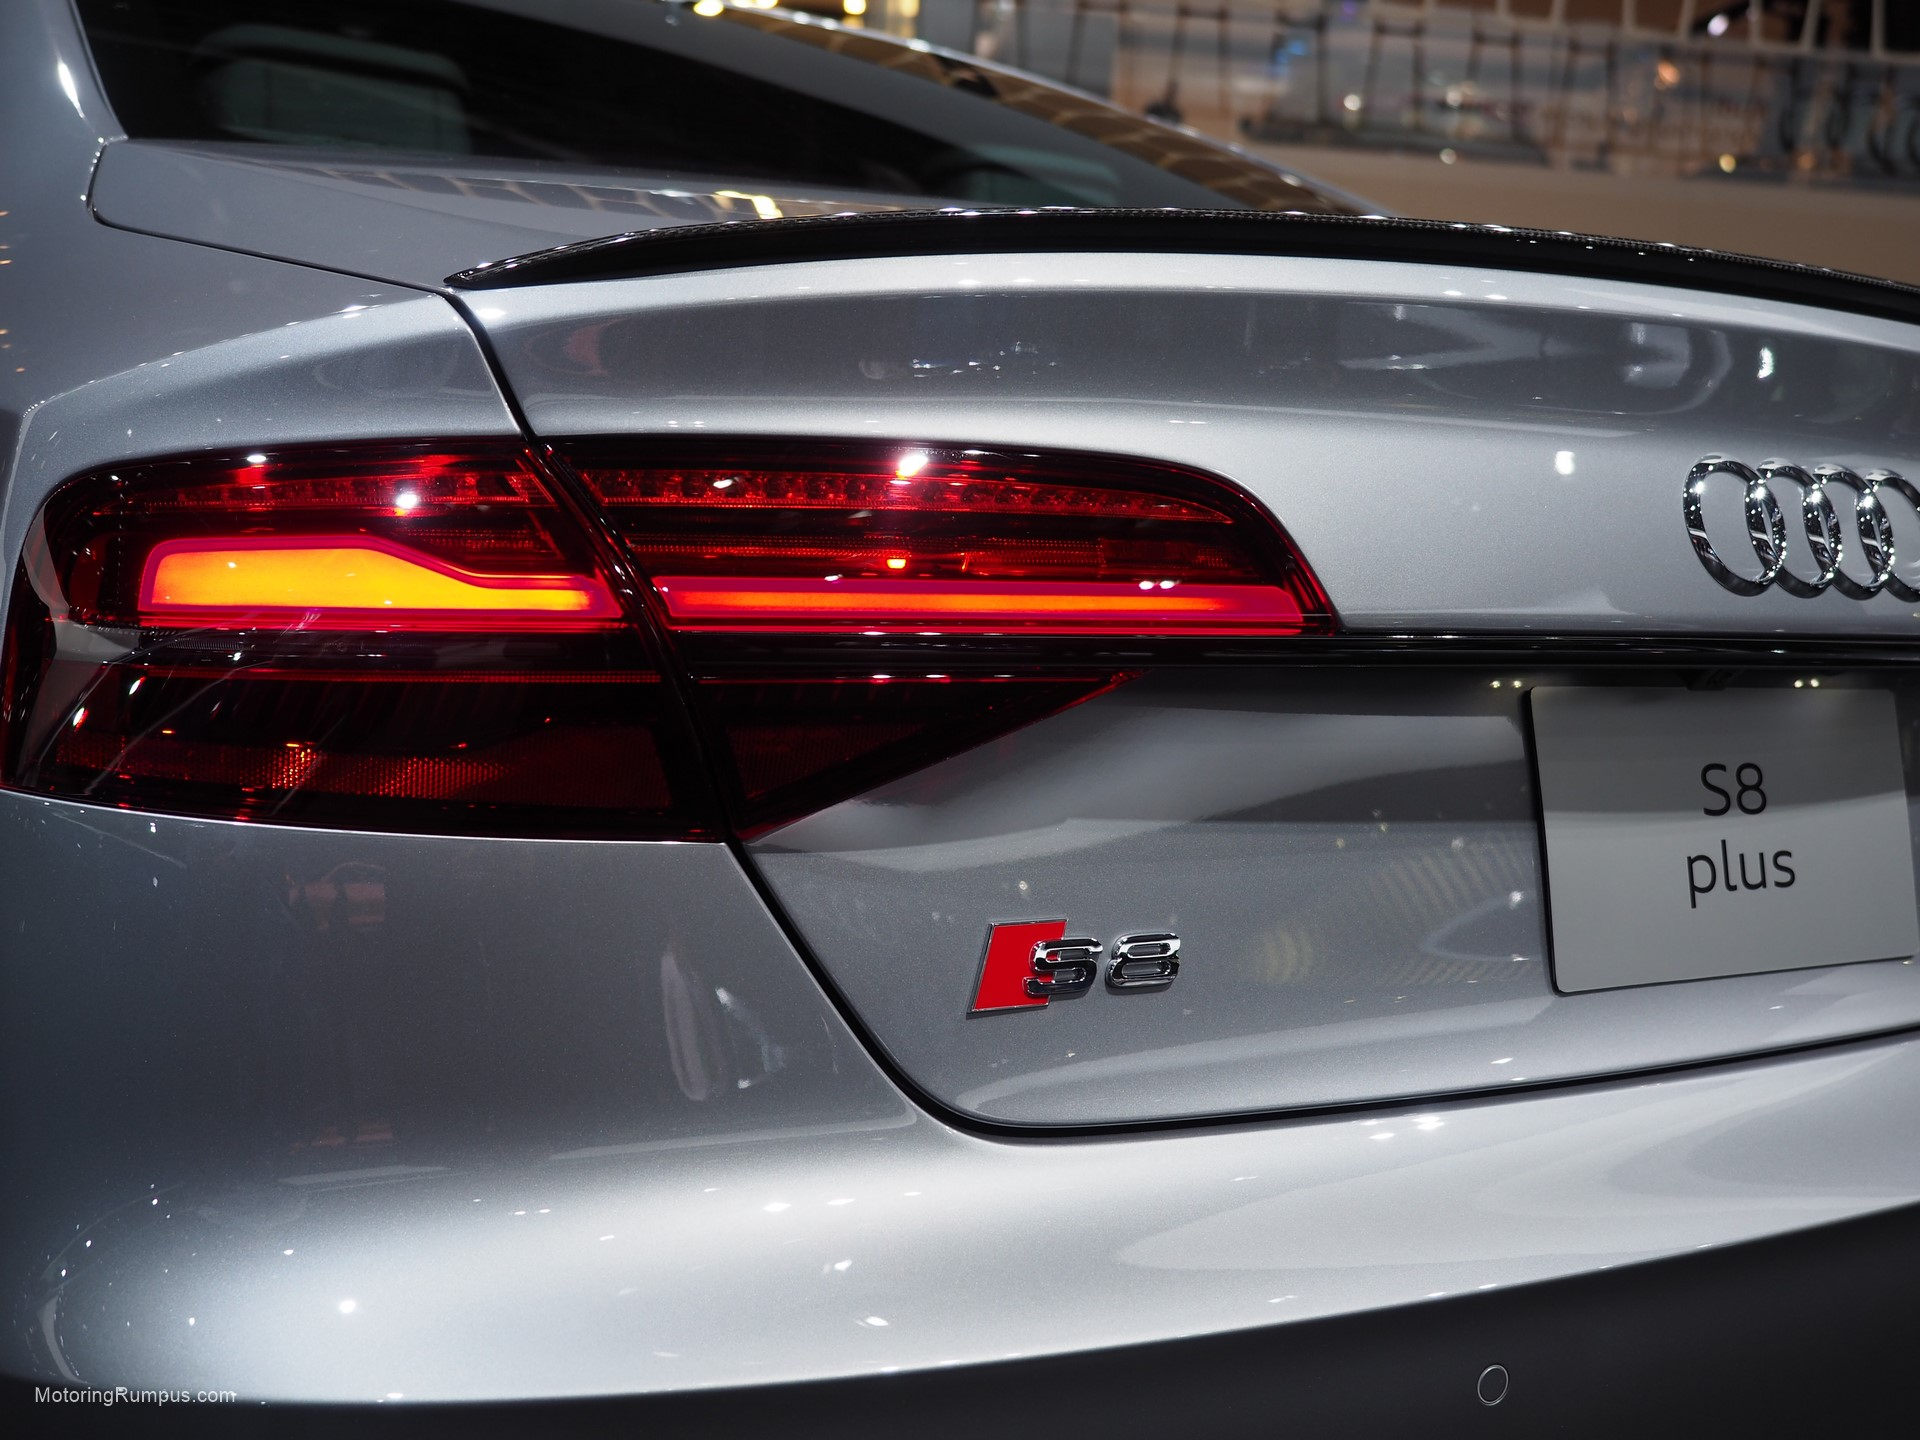 2016 Naias Audi S8 Rear Motoring Rumpus